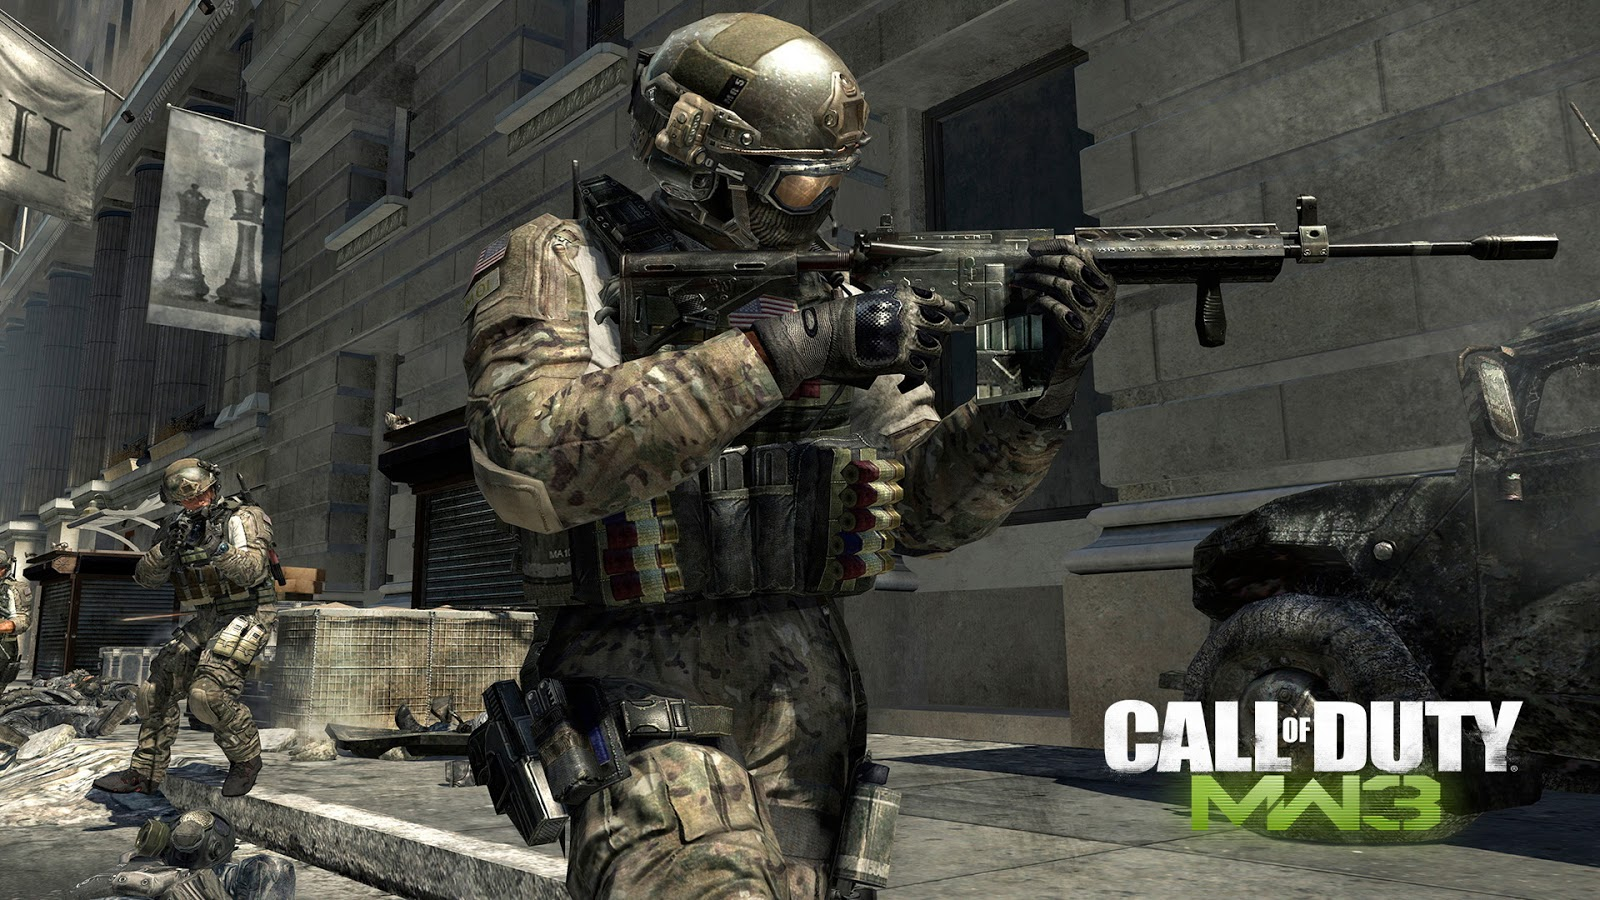 http://1.bp.blogspot.com/-2U8VbvcldzY/UKn0S-KatjI/AAAAAAAAANs/HYDcNLRmzkM/s1600/call+of+duty+modern+warfare+3+hd+wallpapers+(8).jpg